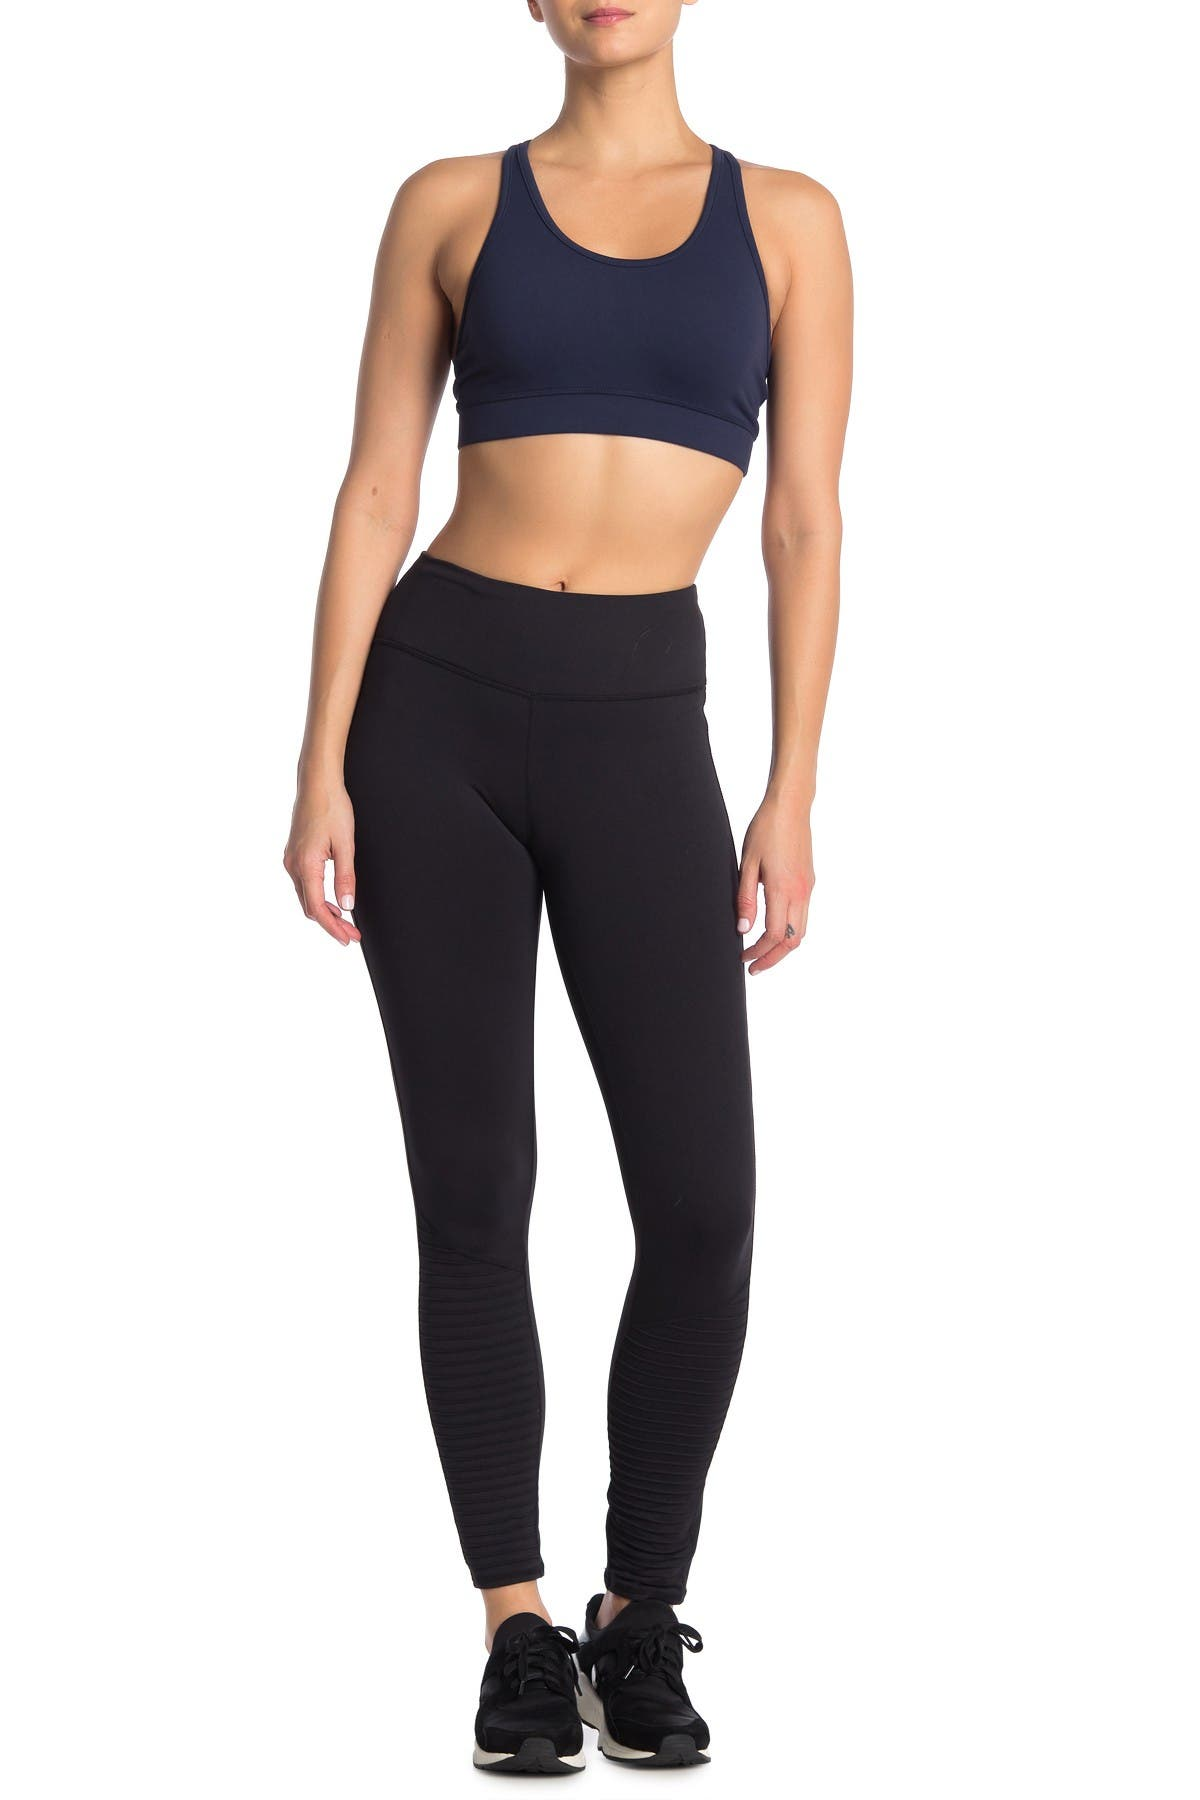 Image of Threads 4 Thought Motto Leggings